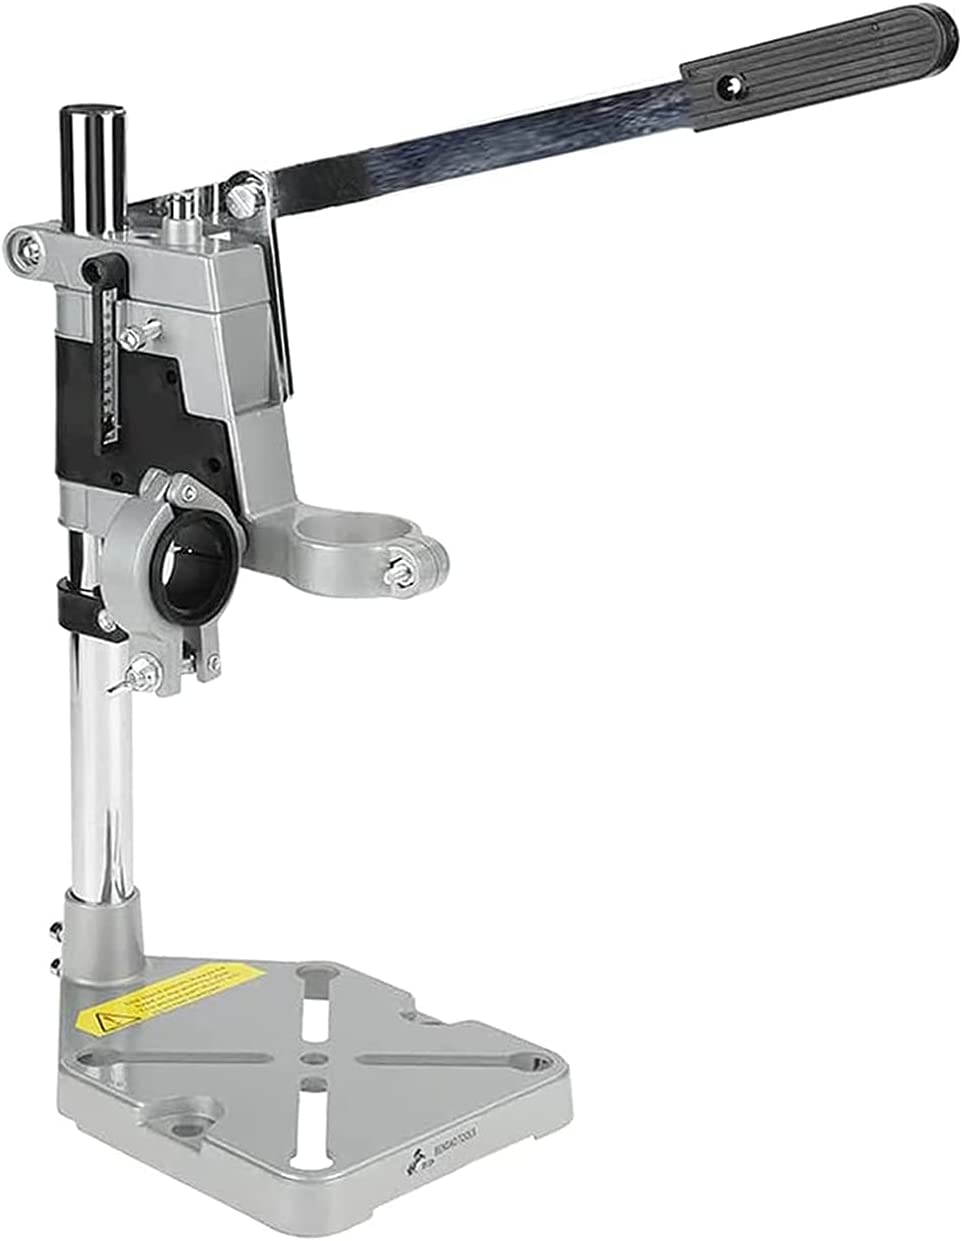 RUTILY Bench Drill Press Double Topics on TV Stand Mounting Ranking TOP6 Holes